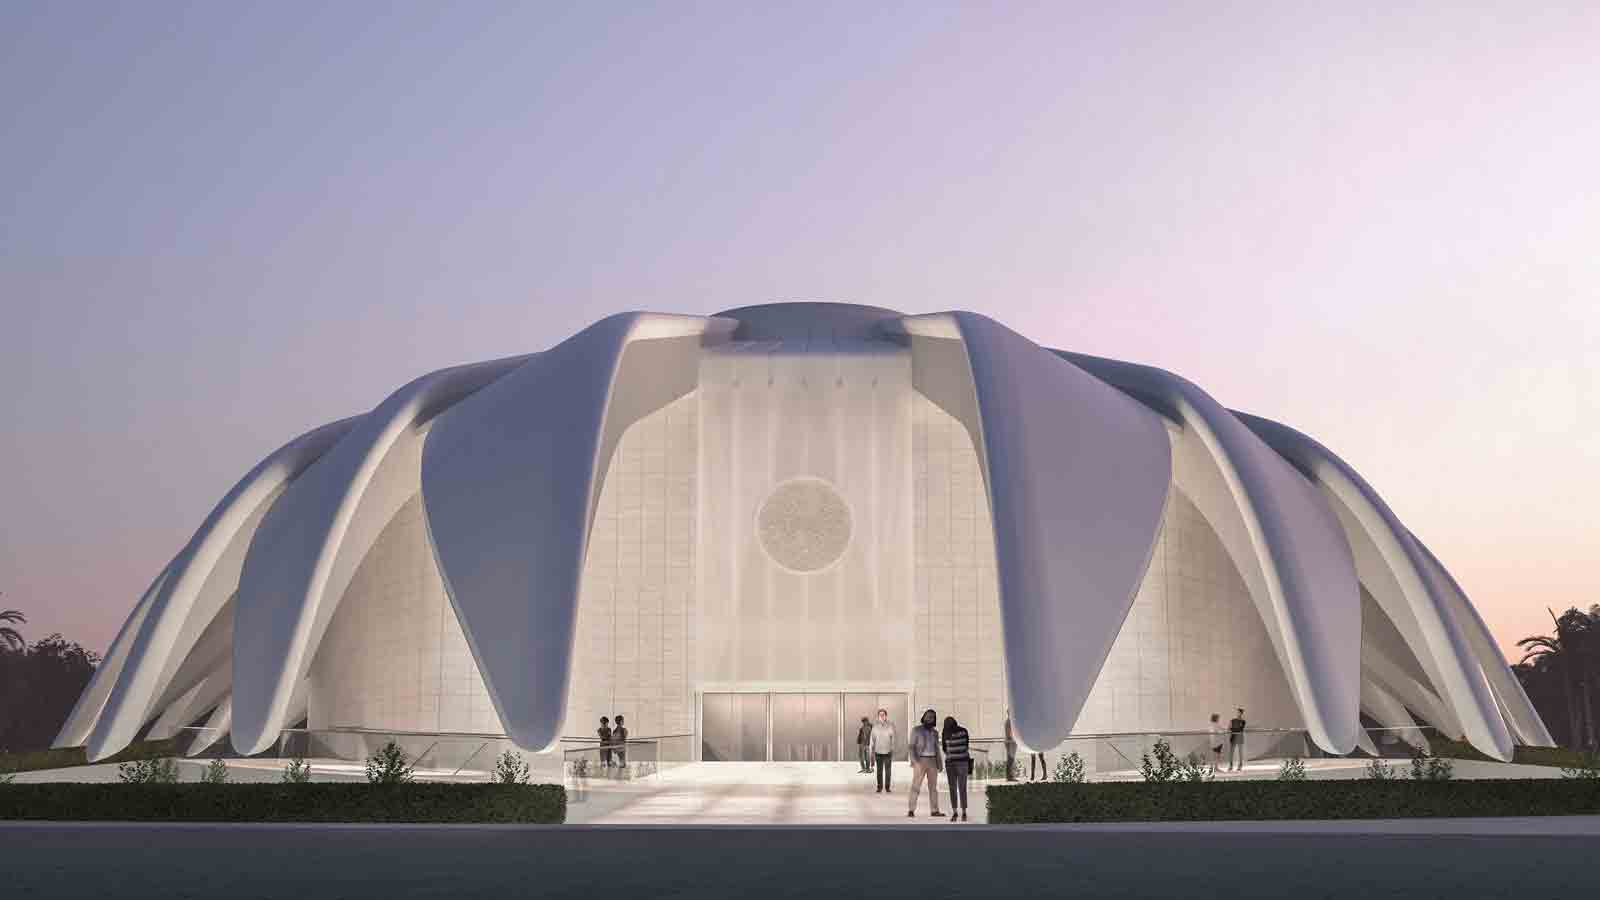 The UAE pavillion, which will sit at the heart of the nearly 500-acre exhibition area, will be seen by the roughly 25 million visitors and participants who are expected to visit the Expo from October 2020 to April 2021. (Supplied: Expo 2020)